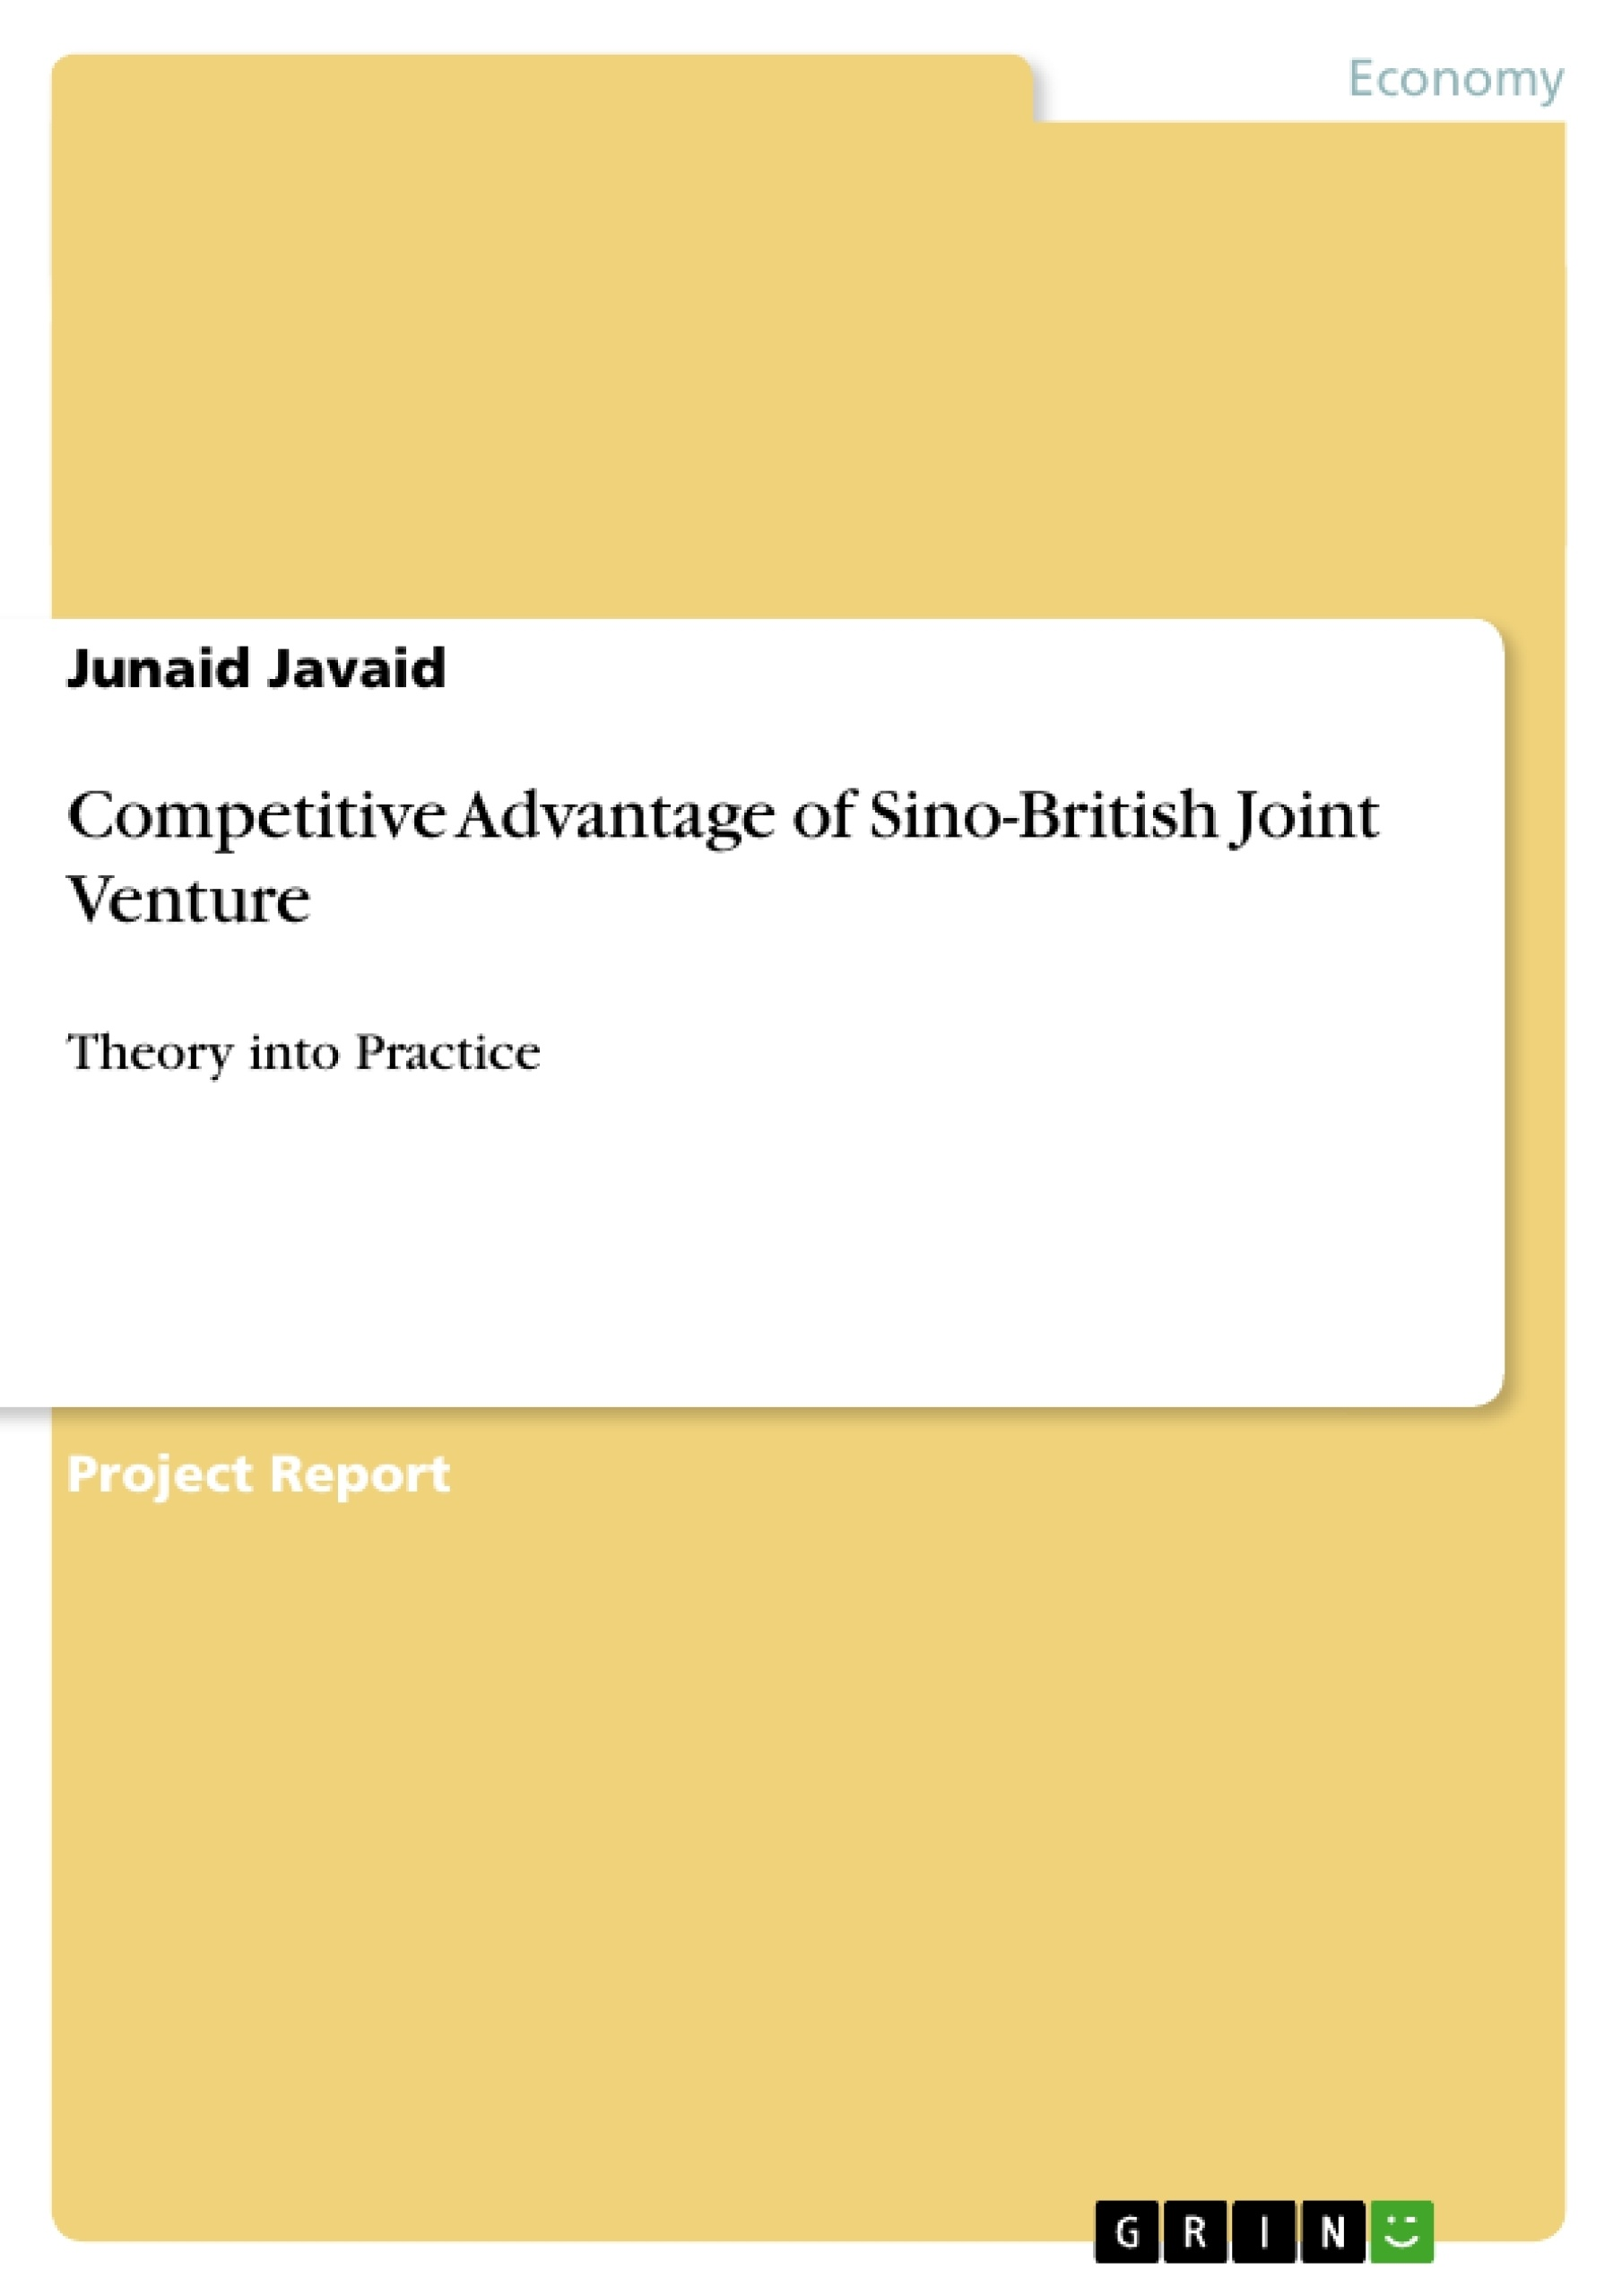 Title: Competitive Advantage of Sino-British Joint Venture